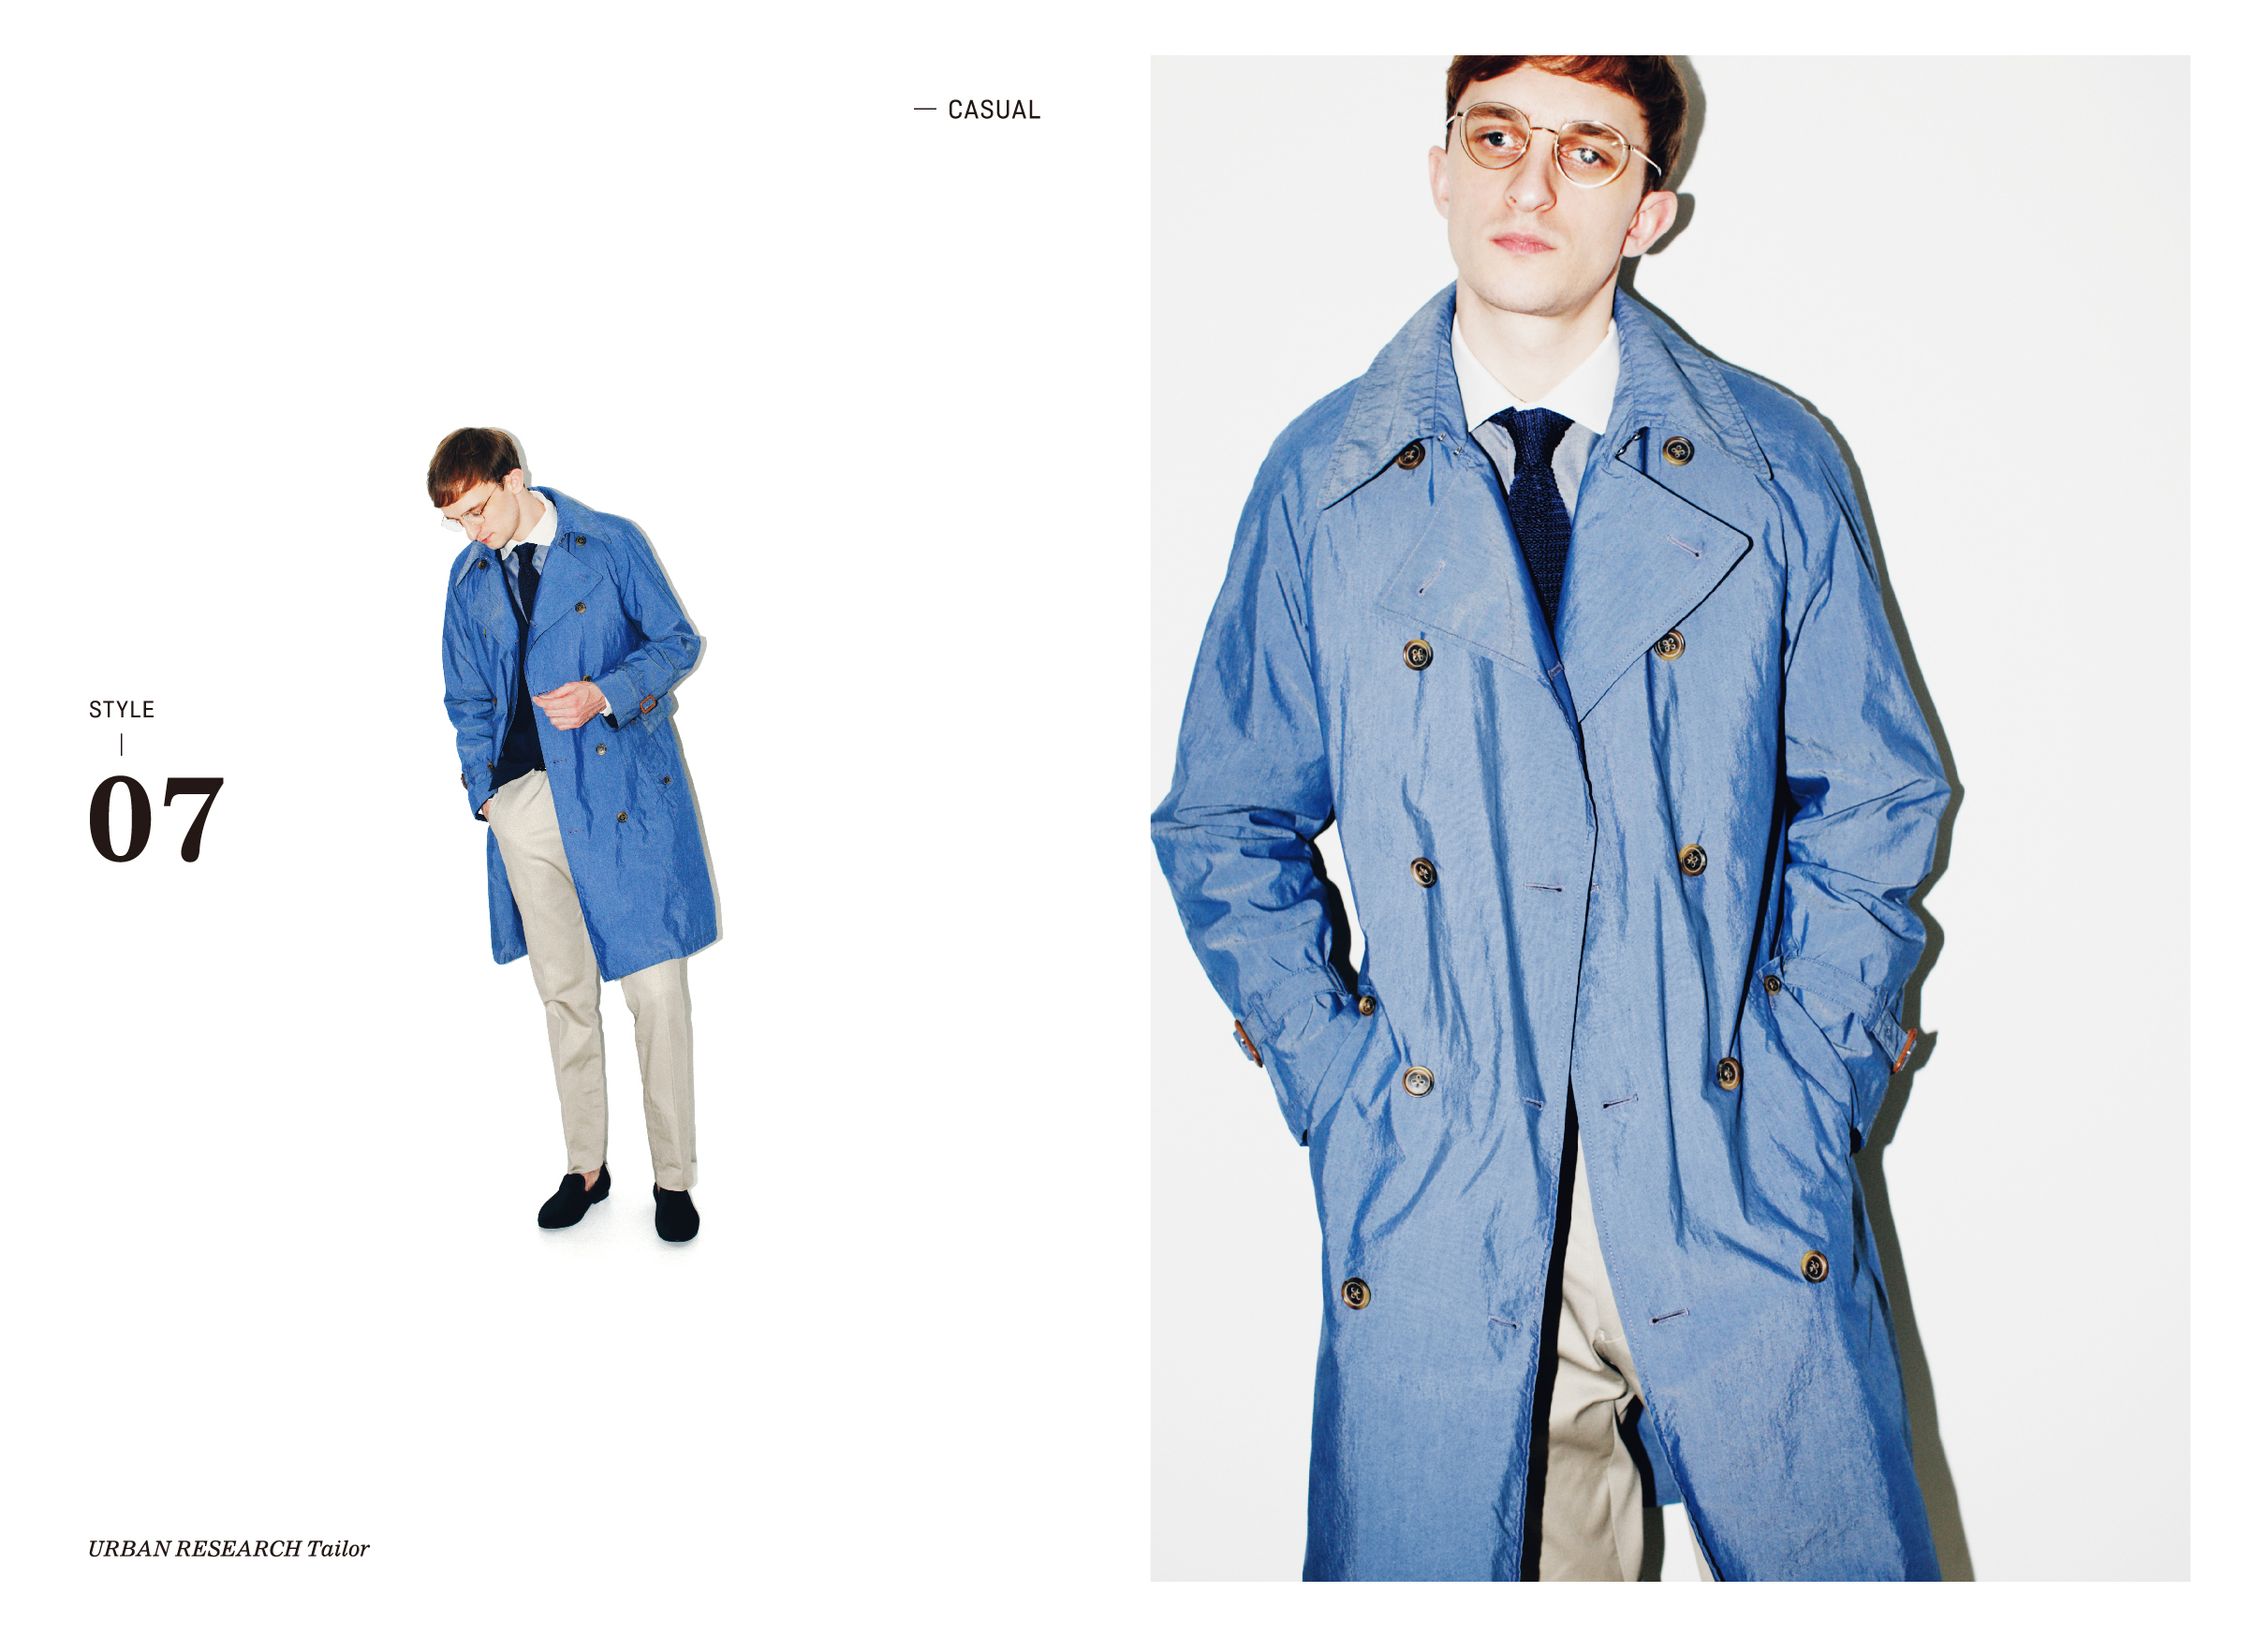 URBAN RESEARCH Tailor 2016 SPRING / SUMMER COLLECTION